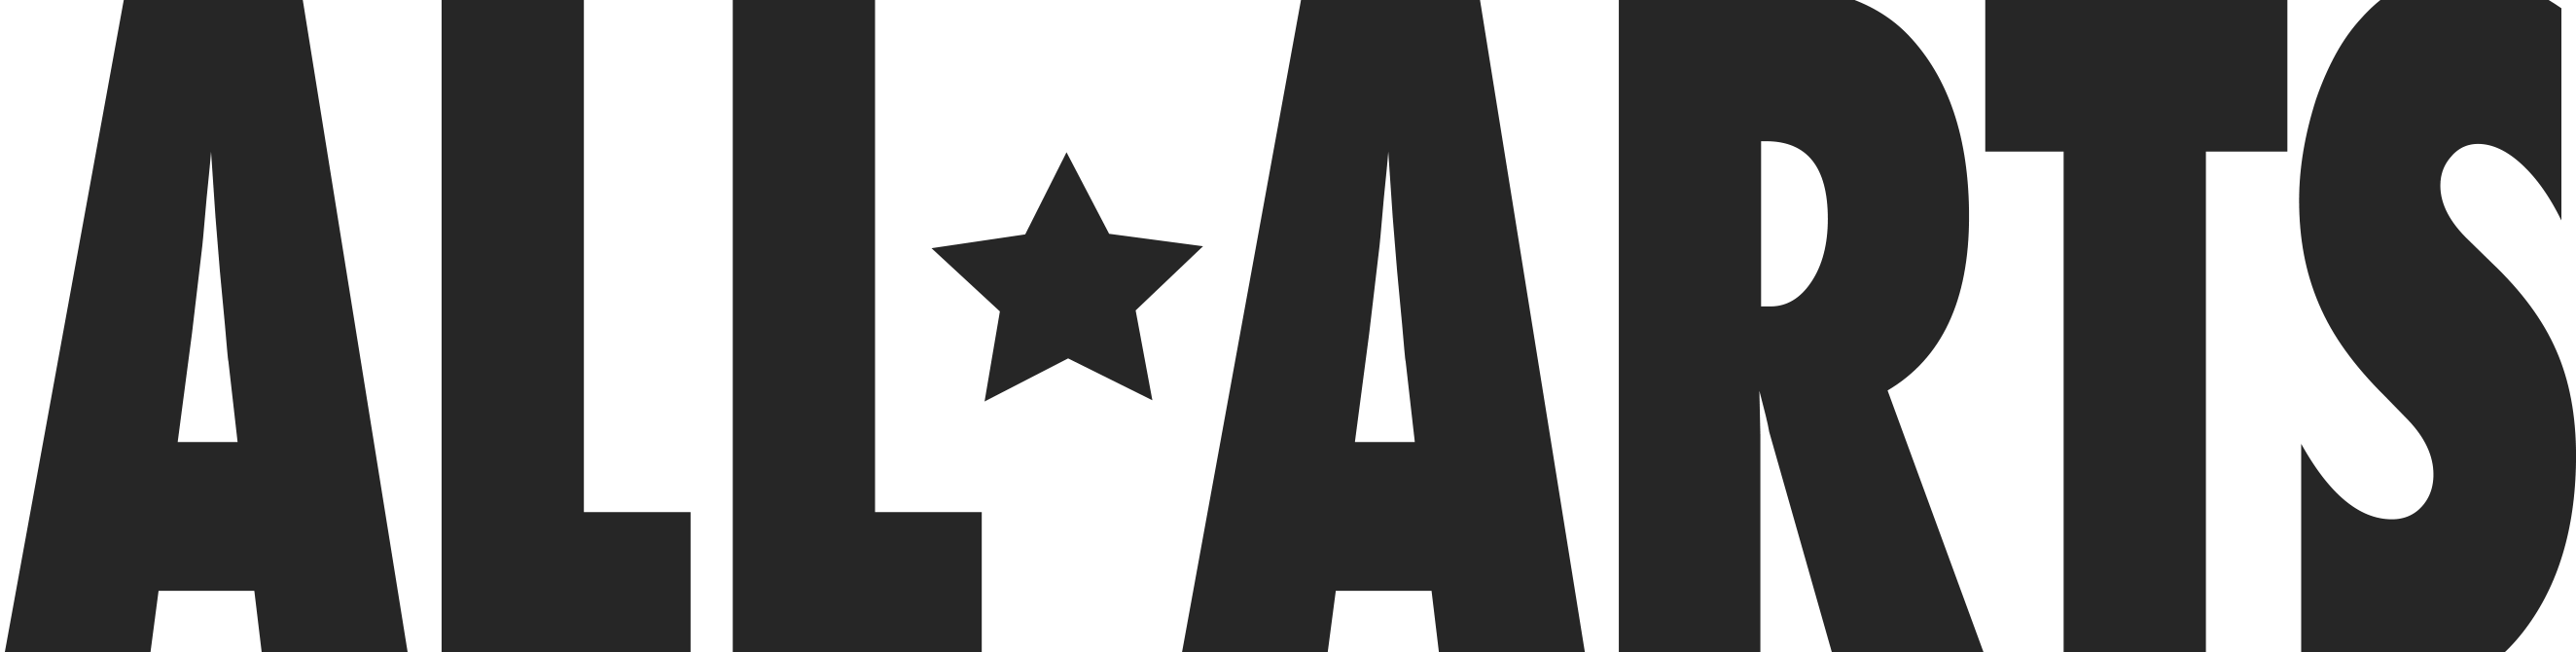 "A logo for ""All Arts"". A small star separate the two, upper-case words."